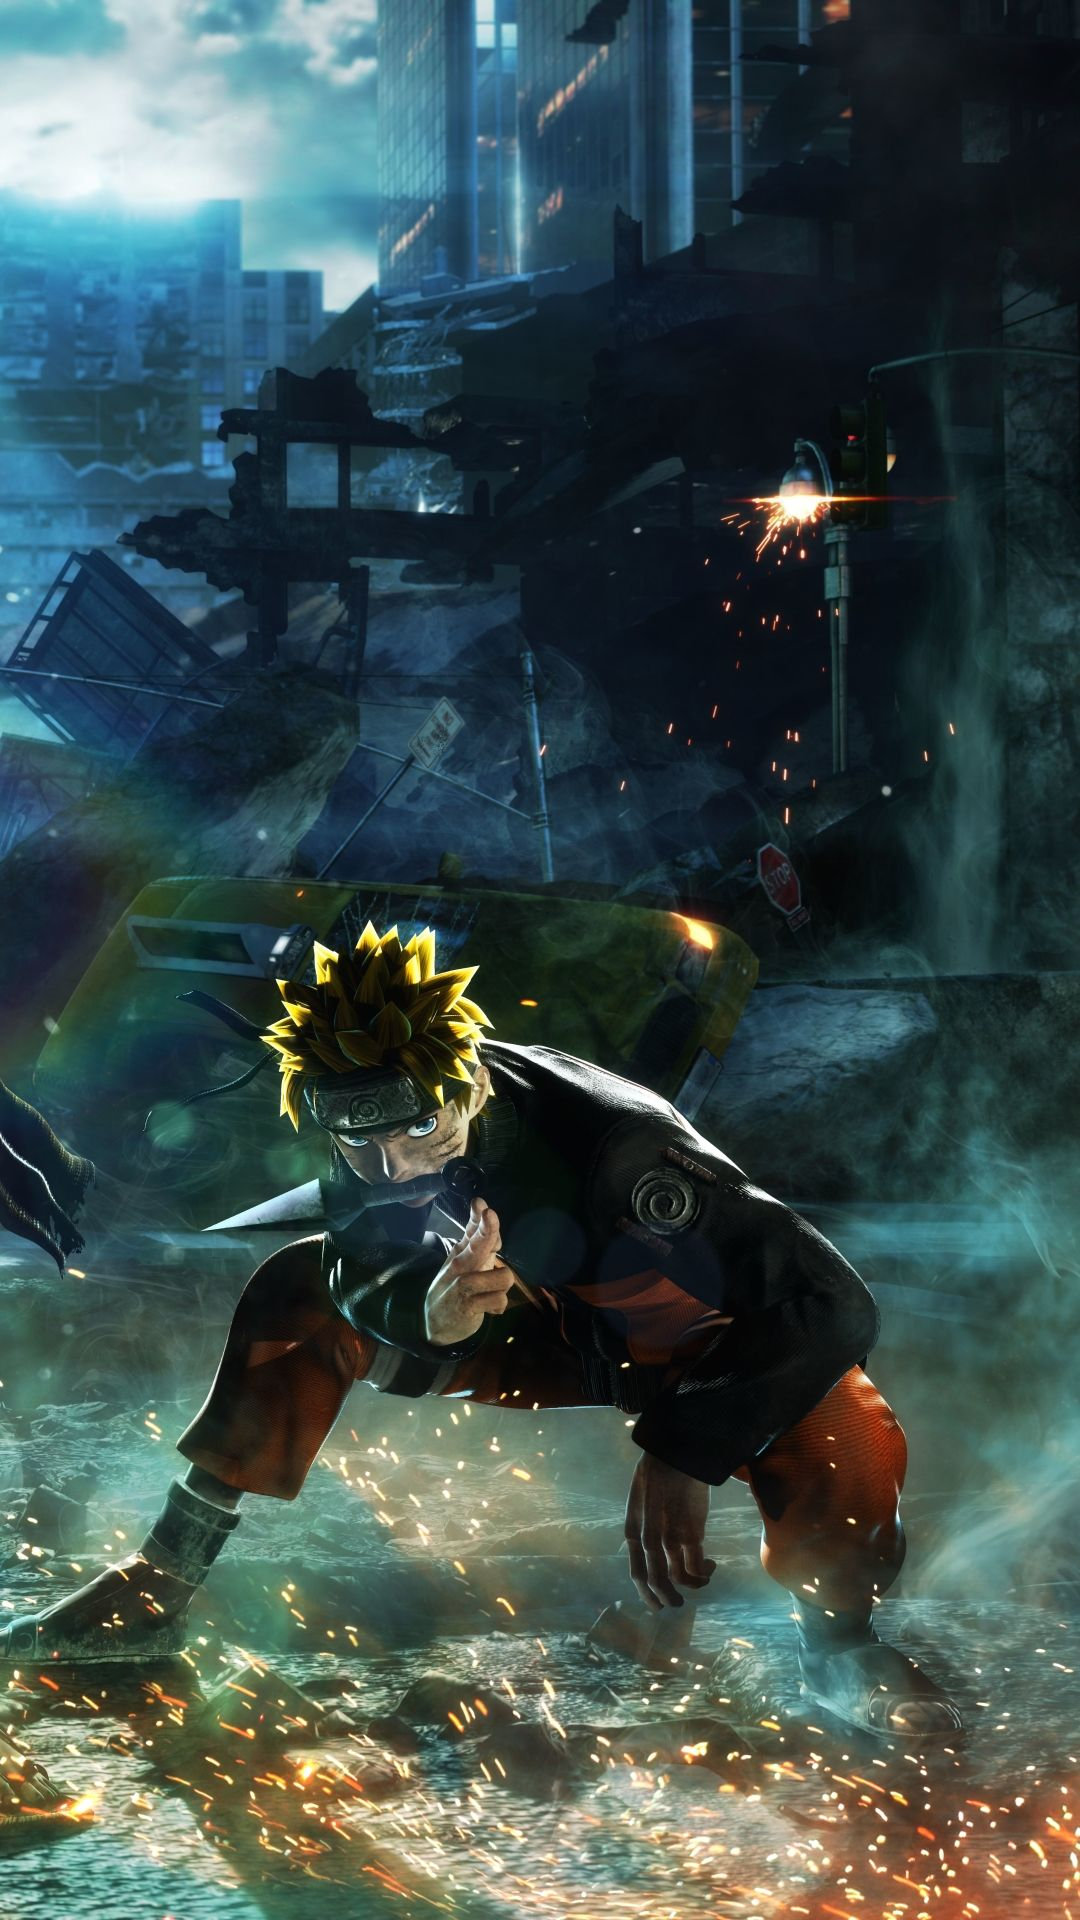 Video Game Walpaper Hd Wallpaper Android Naruto And Sasuke Wallpaper Wallpaper Naruto Shippuden Naruto Shippuden Sasuke